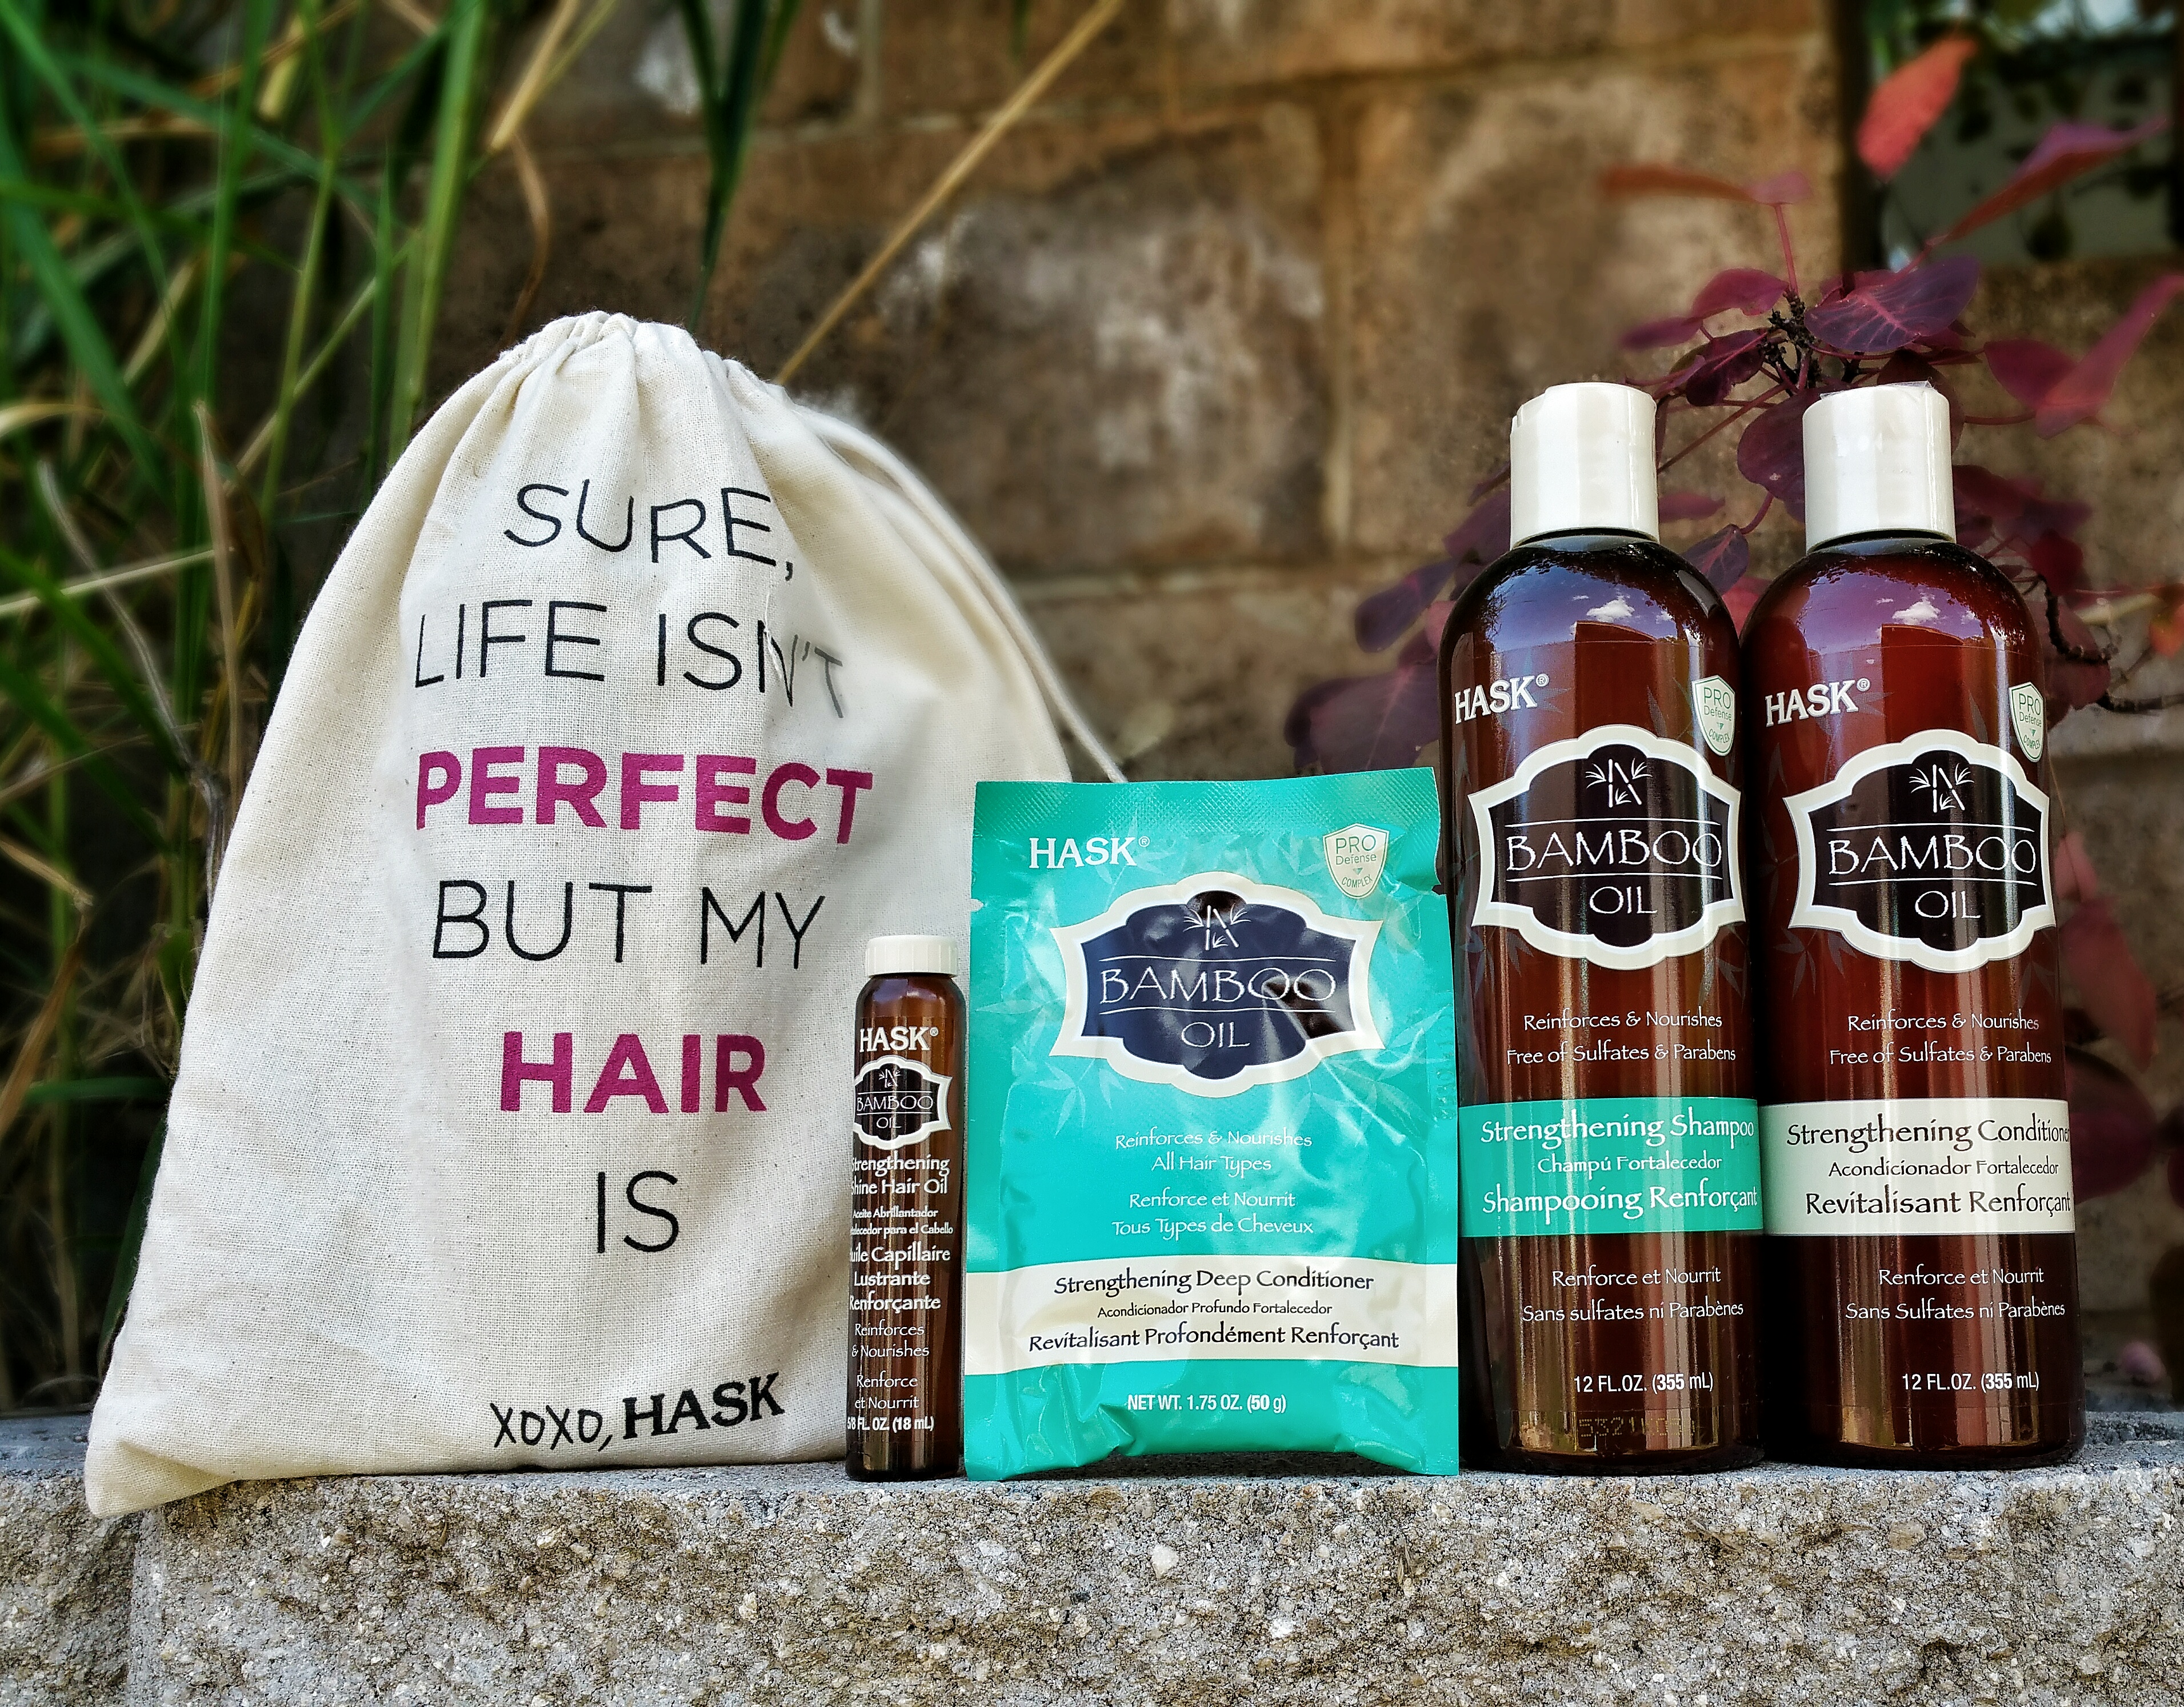 HASK, Hask hair care, HASK bamboo oil collection, hair, beauty, beauty review, hair product, curly hair, repair damage hair, strengthen hair, hair care review, hair product review, natural hair, long hair,